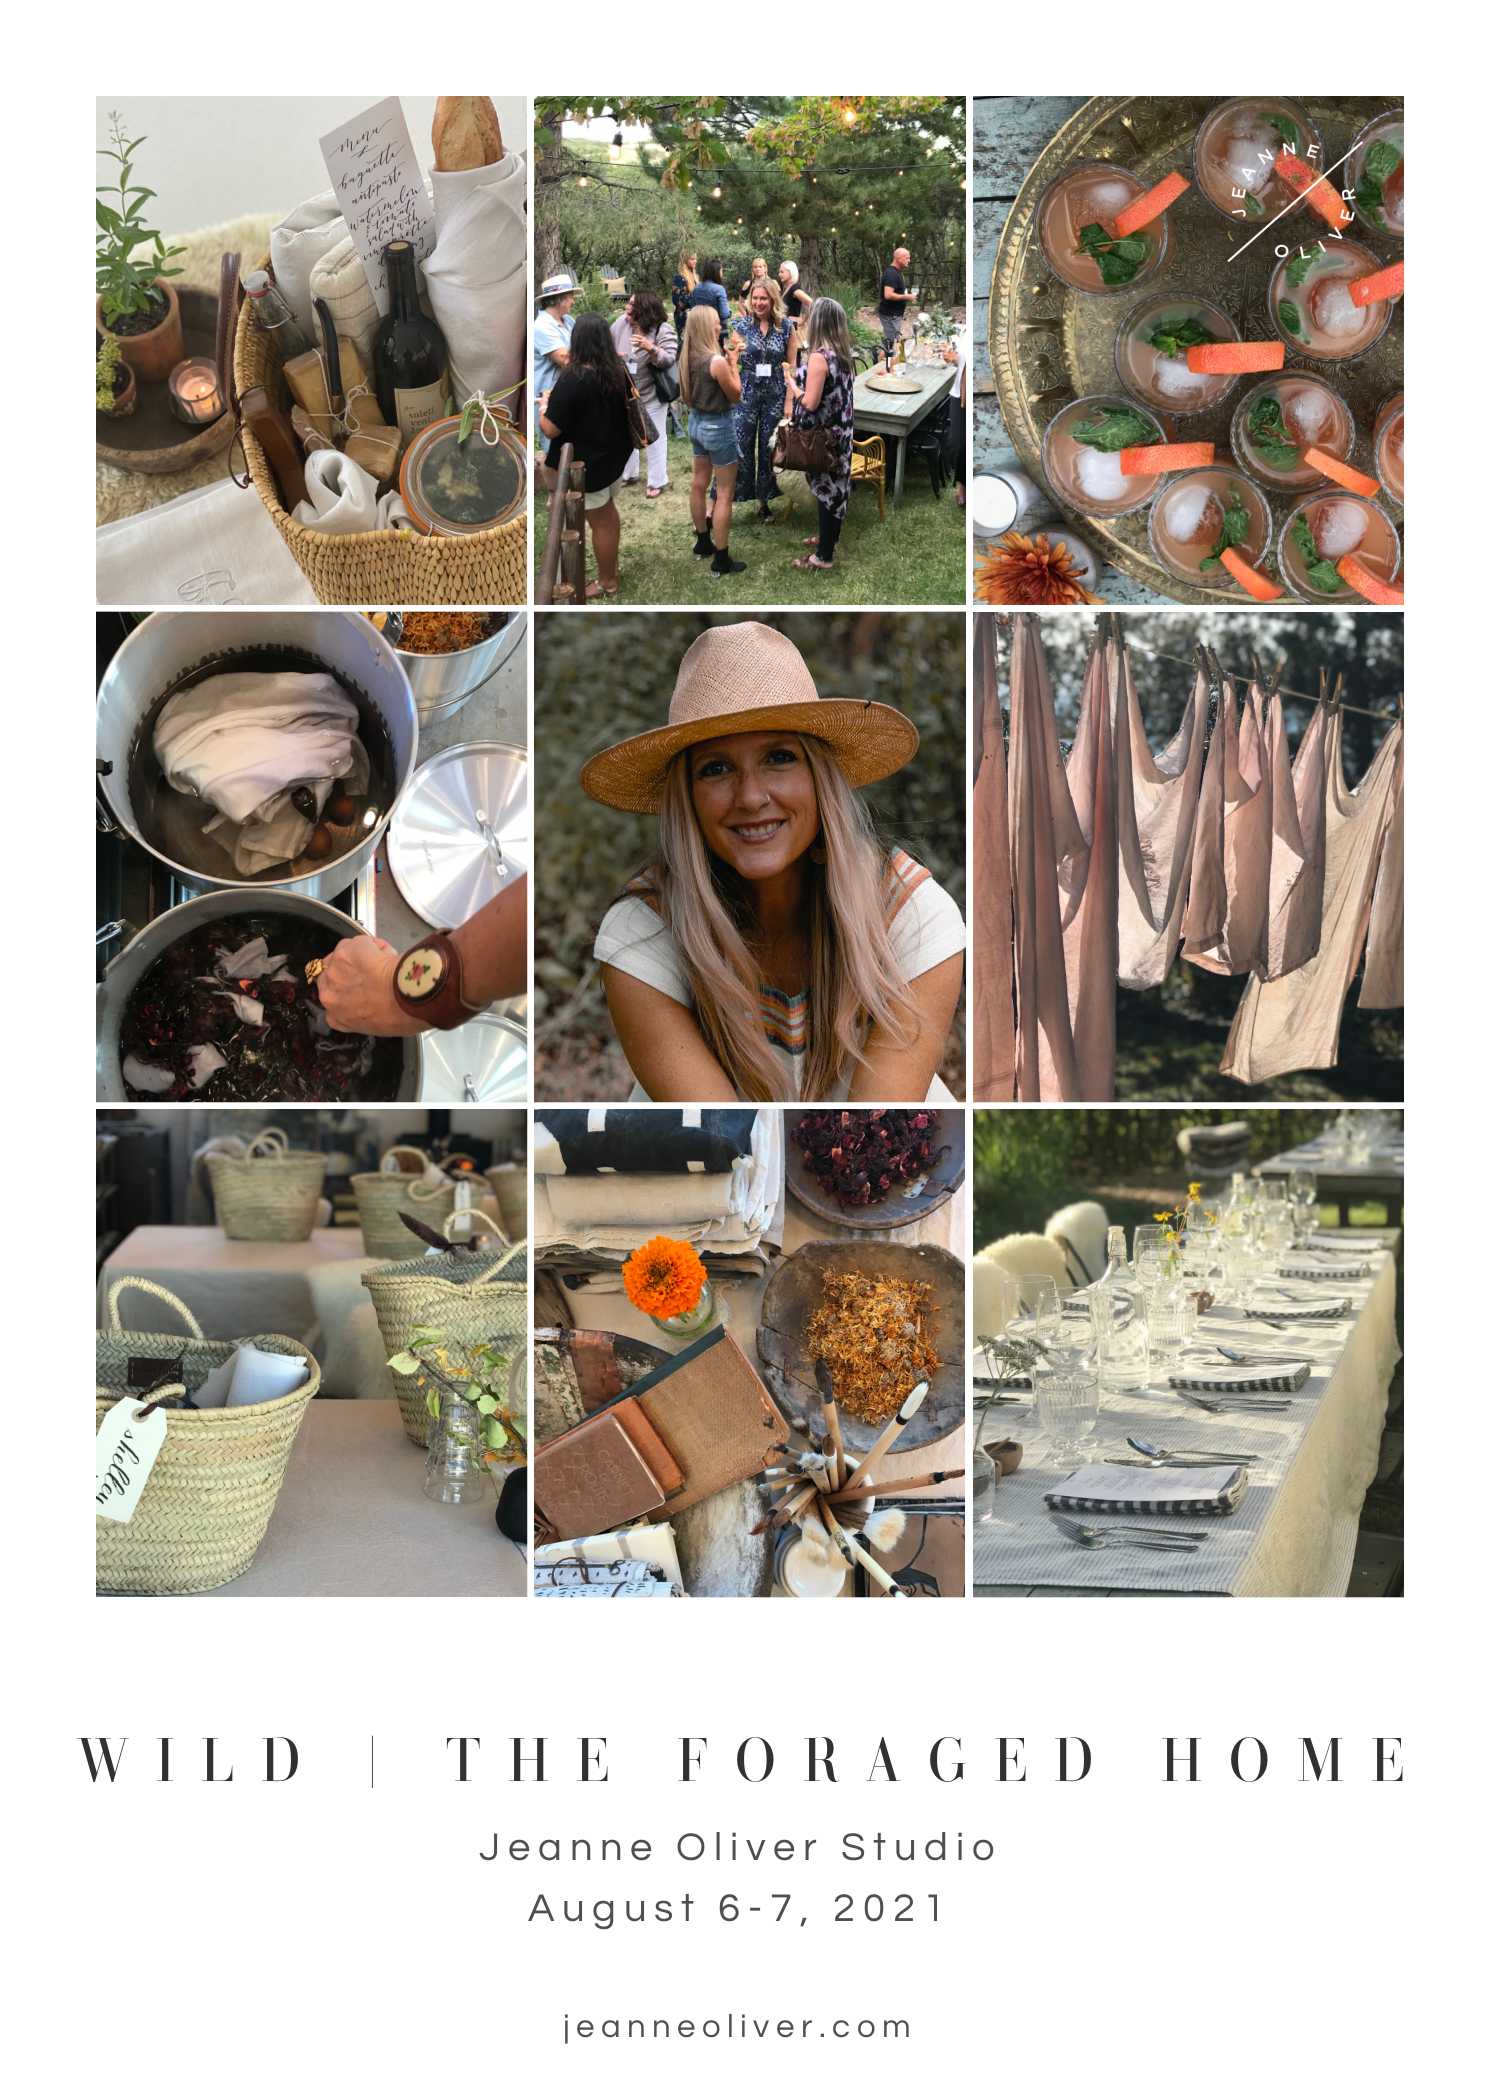 Wild | The Foraged Home with Jeanne Oliver